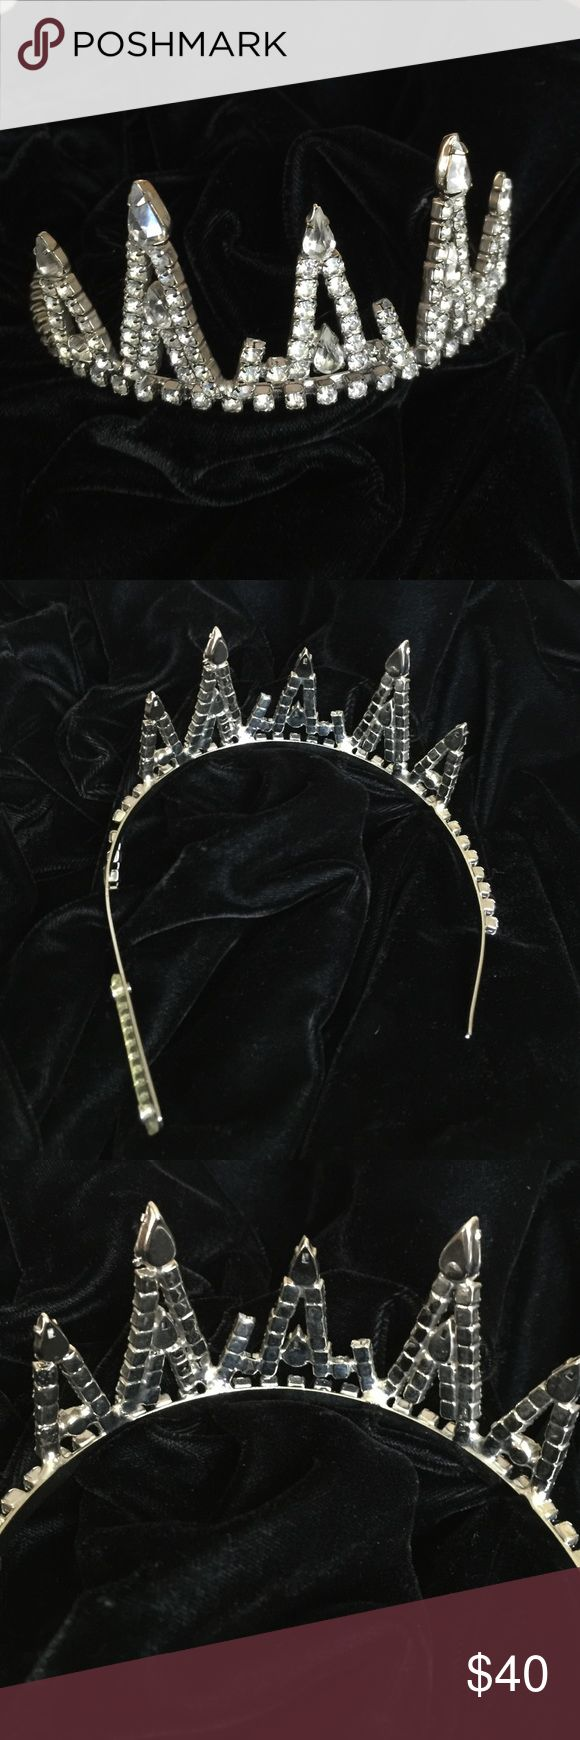 Vintage rhinestone tiara The prom queen's tiara from the mid-sixties!!! This vintage gem is WOW. All crystals and rhinestones are shiny and clear.  One of the leg extensions has been lost over the years, and the string of rhinestones on one side needs to be glued. The original owner just didn't have the heart to give this away. Found at her estate sale. Sold as is. (HESIOD) Vintage Accessories Hair Accessories